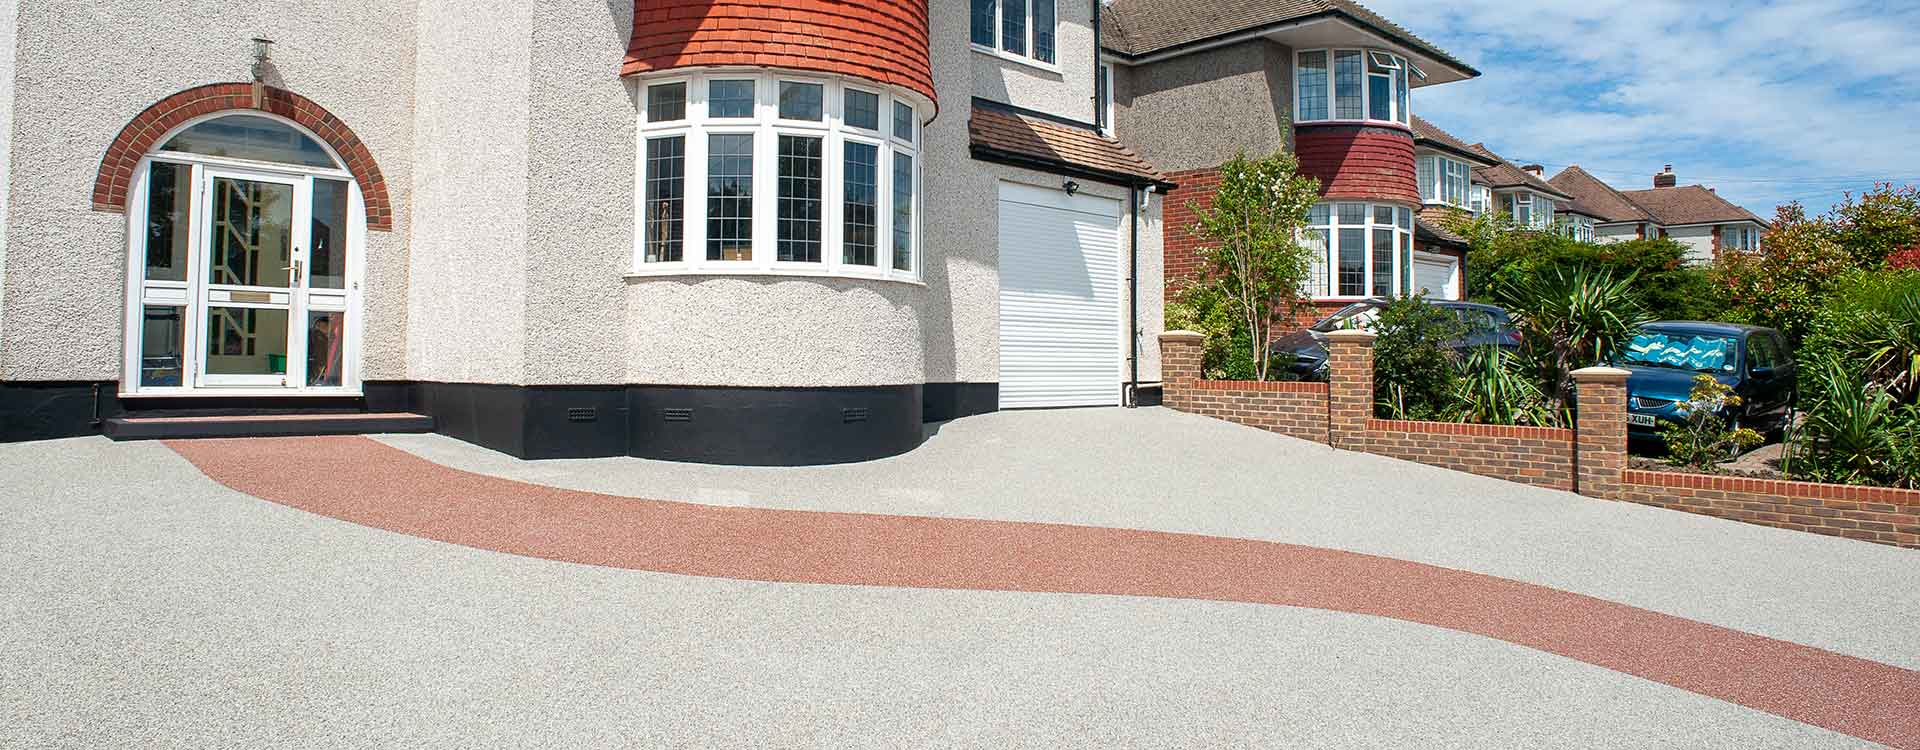 Resin bonded driveway with red curved path detail